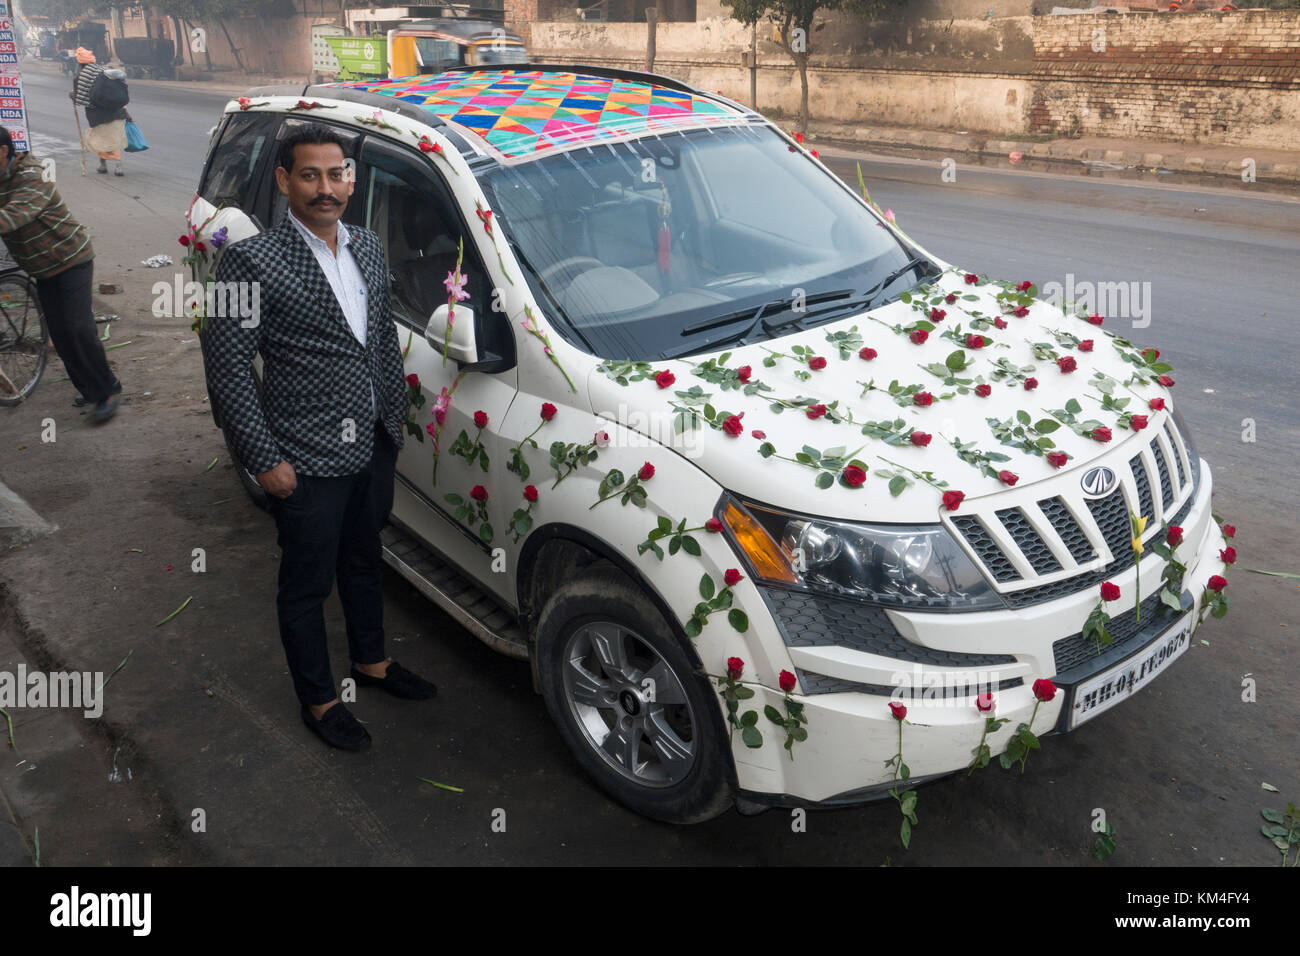 Vehicle decorations stock photos vehicle decorations stock images punjabi bridegroom stands next to wedding suv vehicle decorated in roses in amritsar india junglespirit Gallery